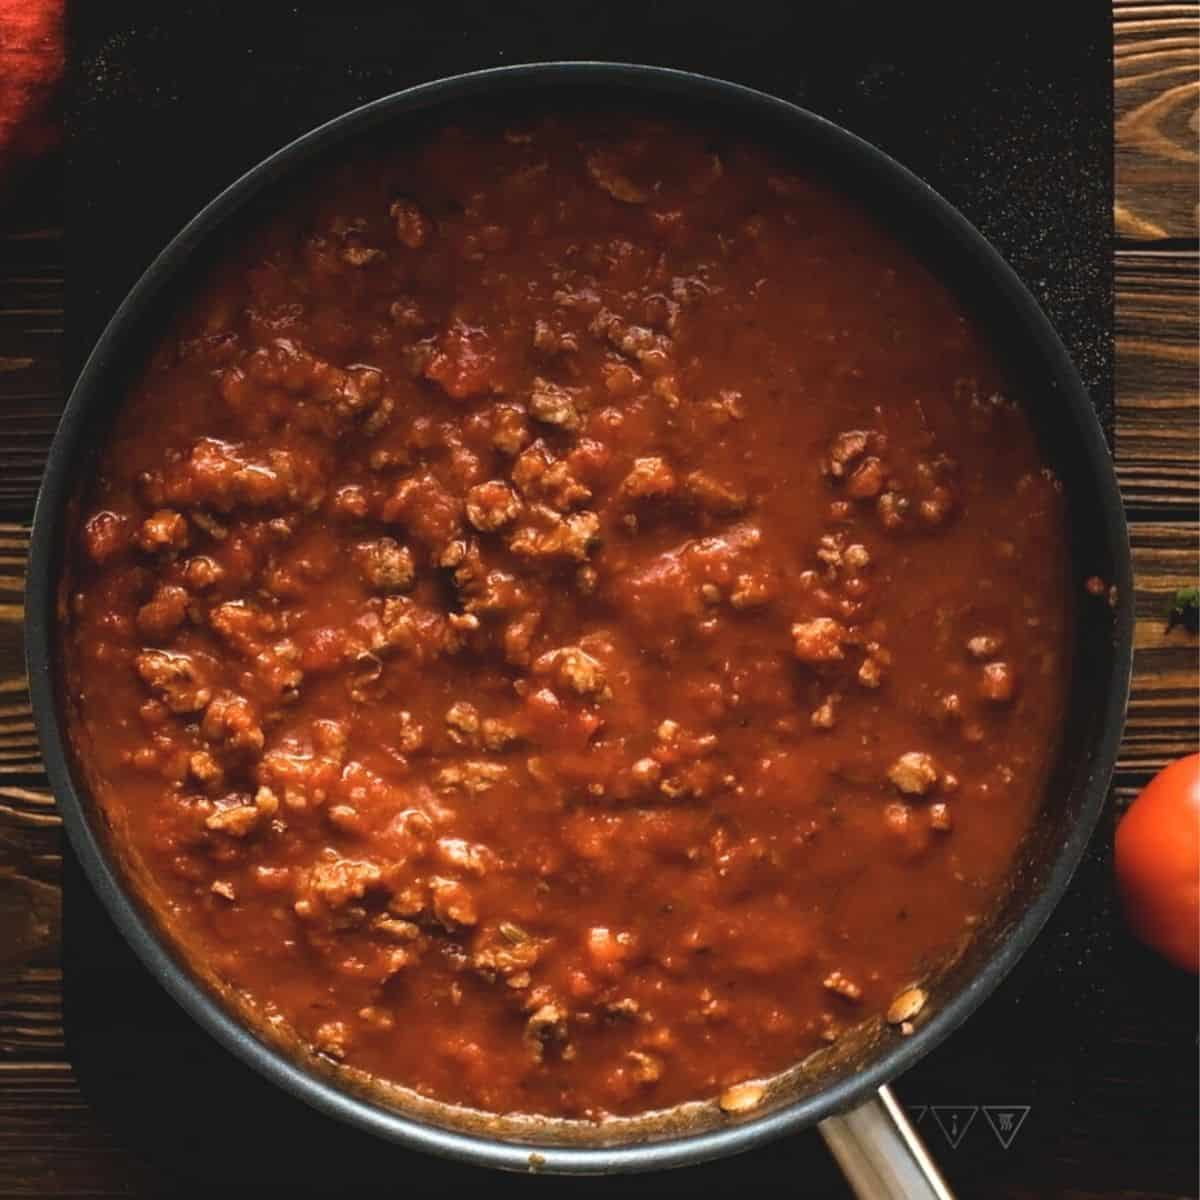 Ground beef mixed with tomato sauce and water in skillet.